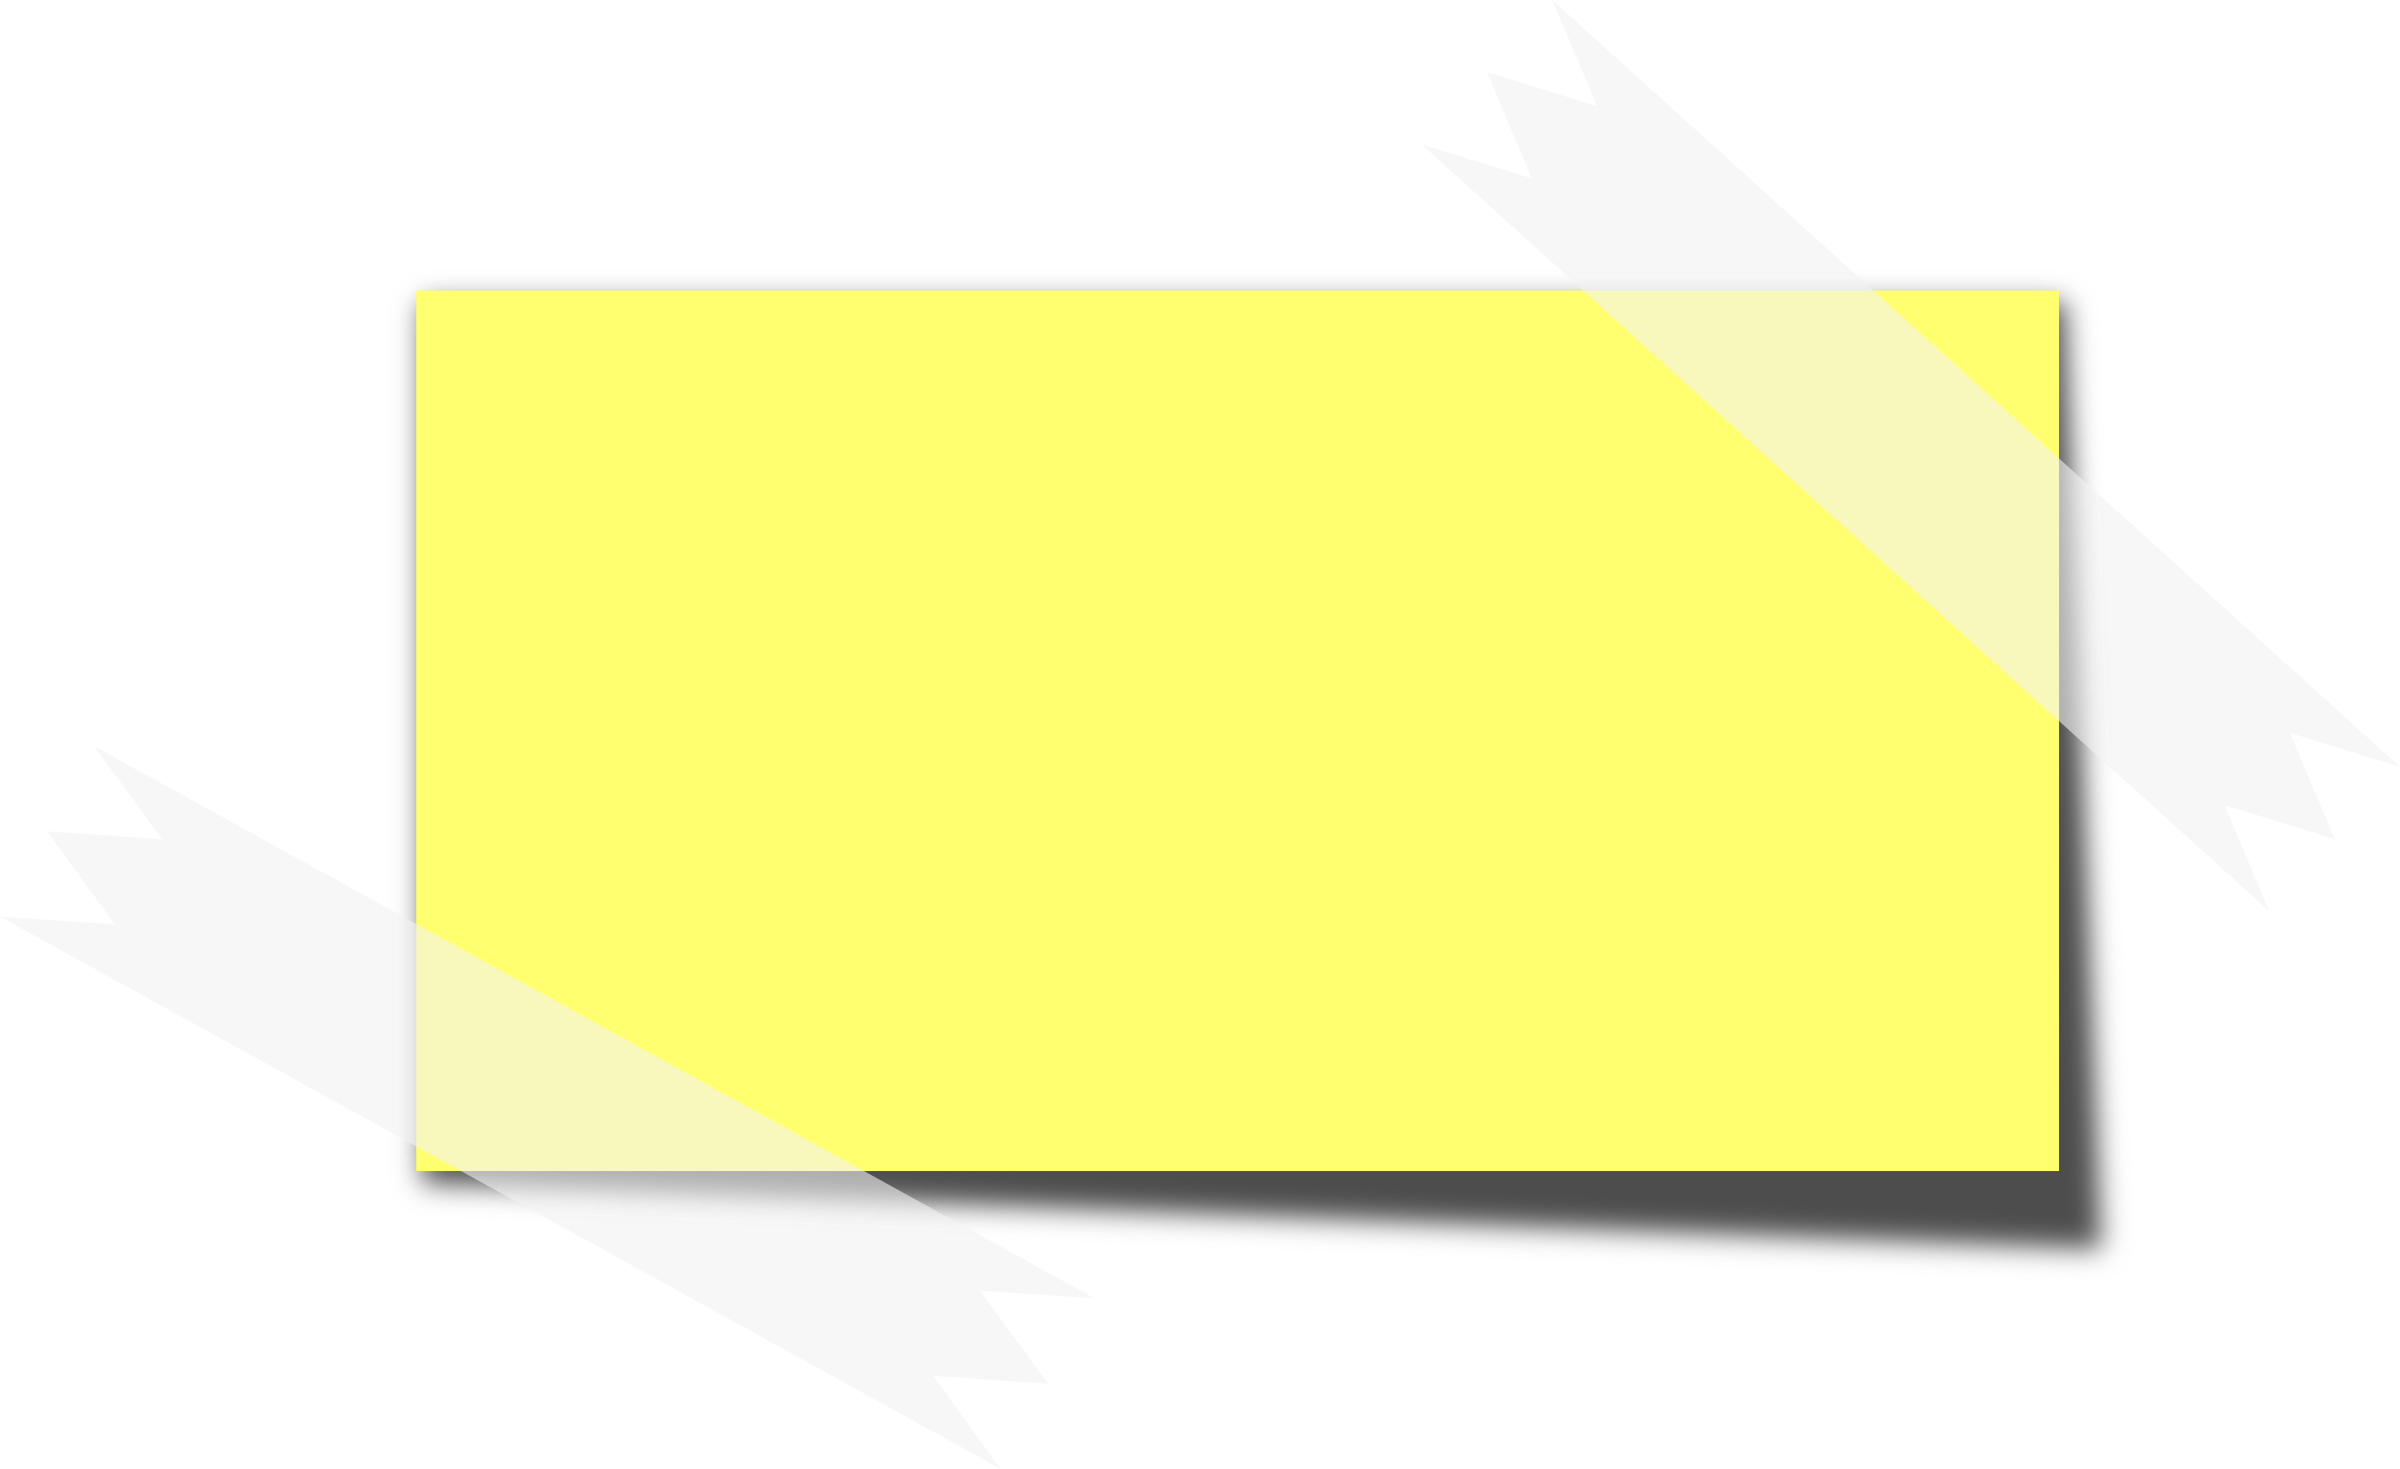 Paper clipart sticky note. Big image png